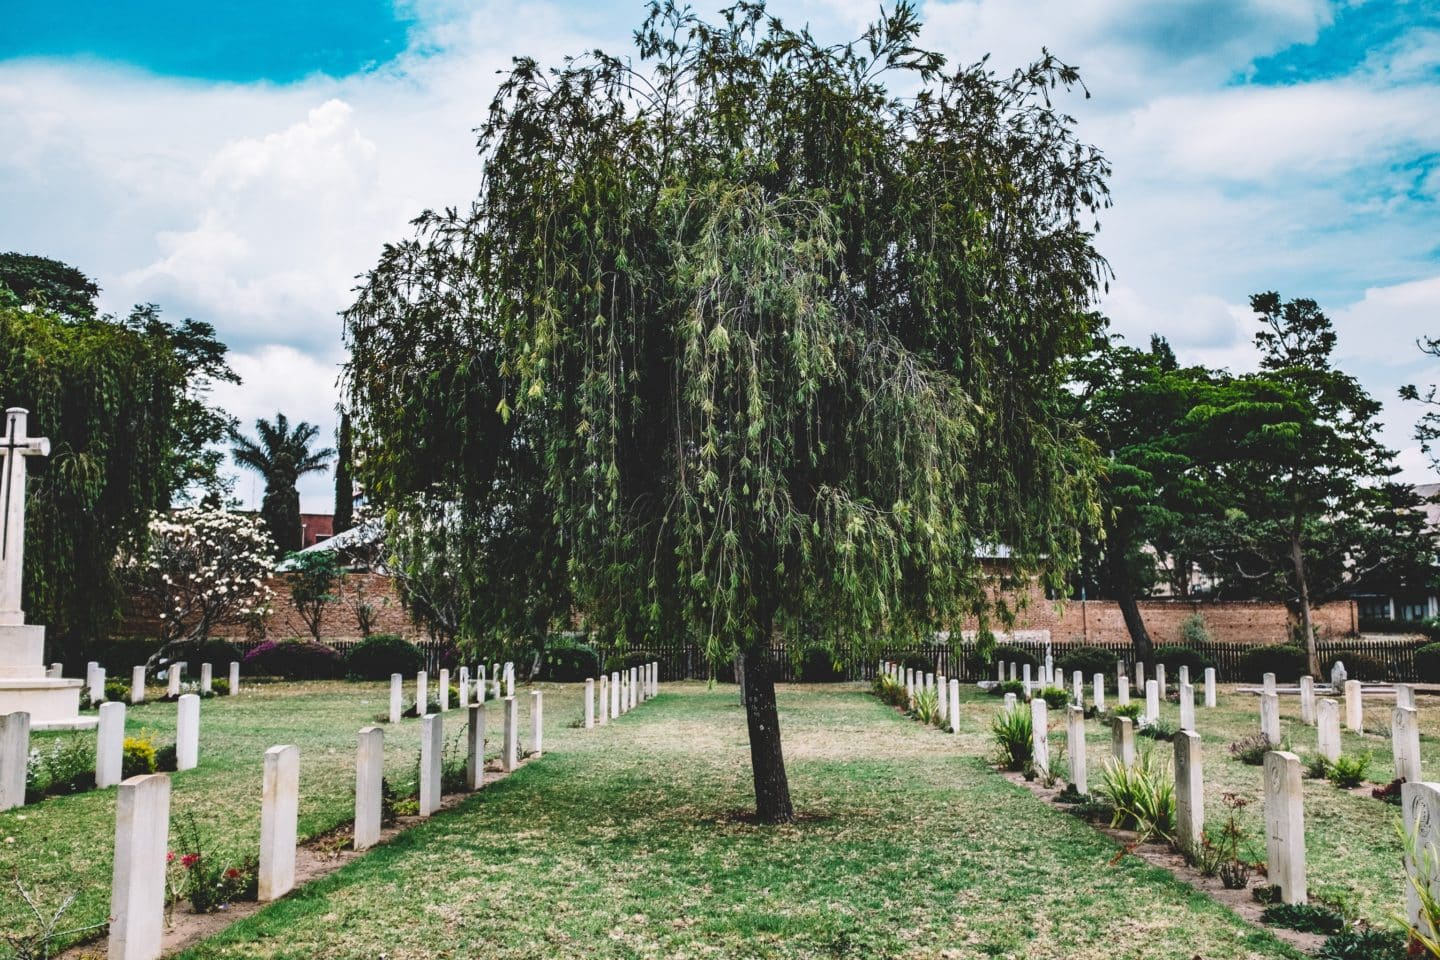 What Attending 300 Funerals Taught Me About Living